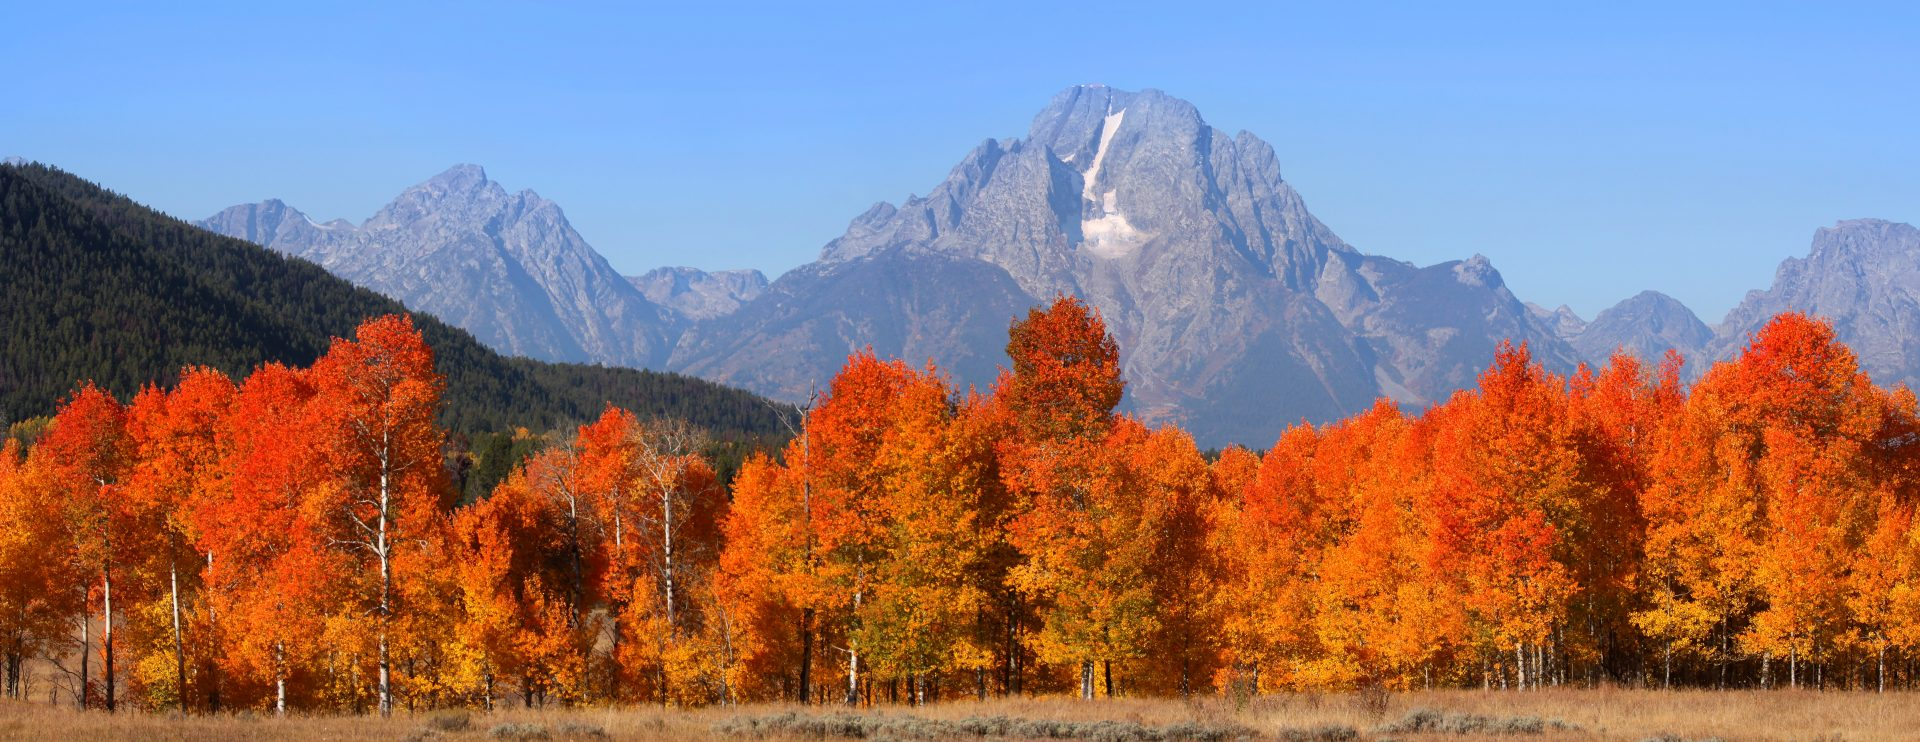 Fall in Jackson Hole